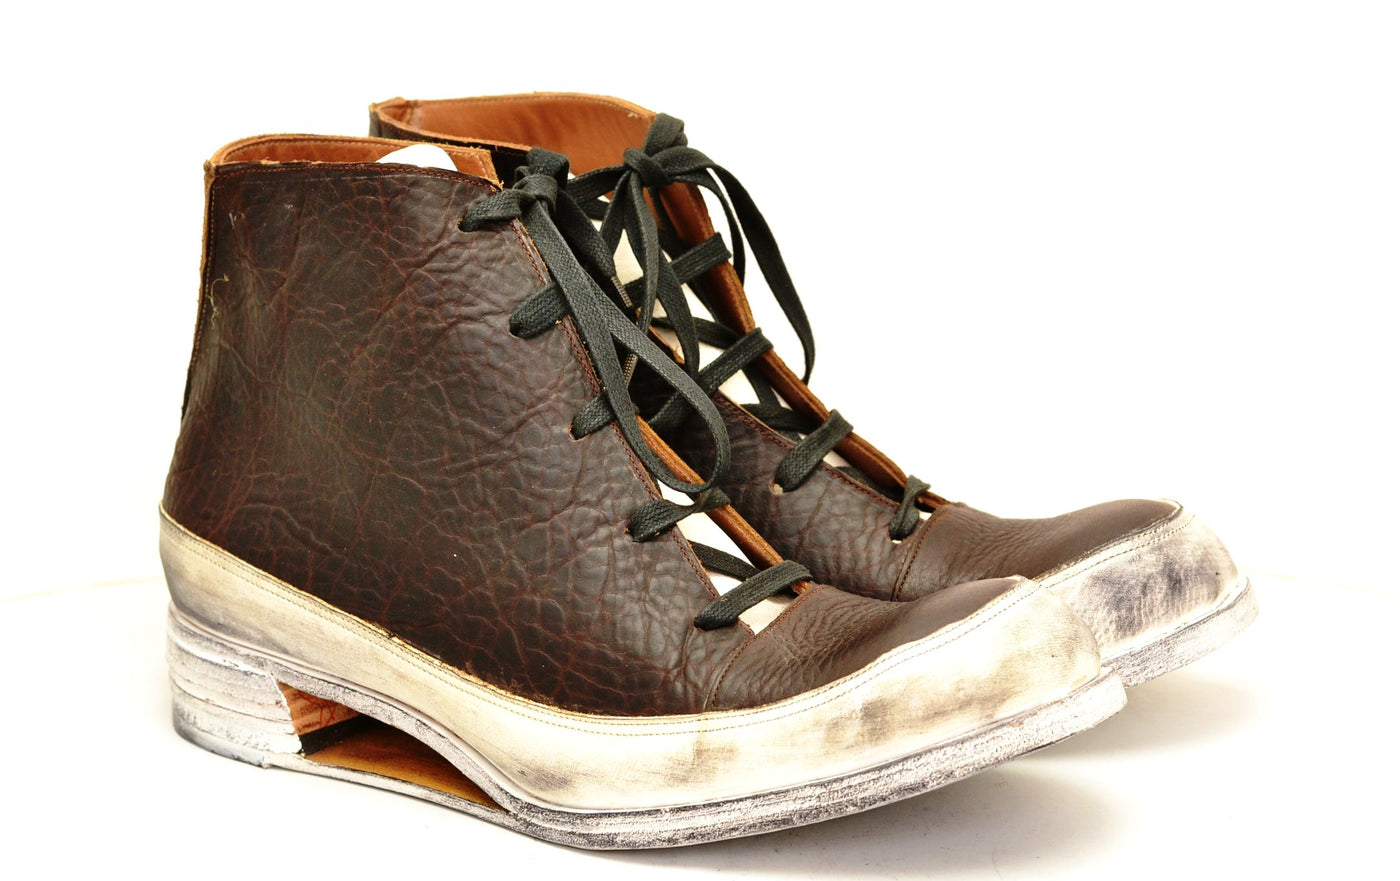 Sneaker boot  |  Hollow wedge Bison